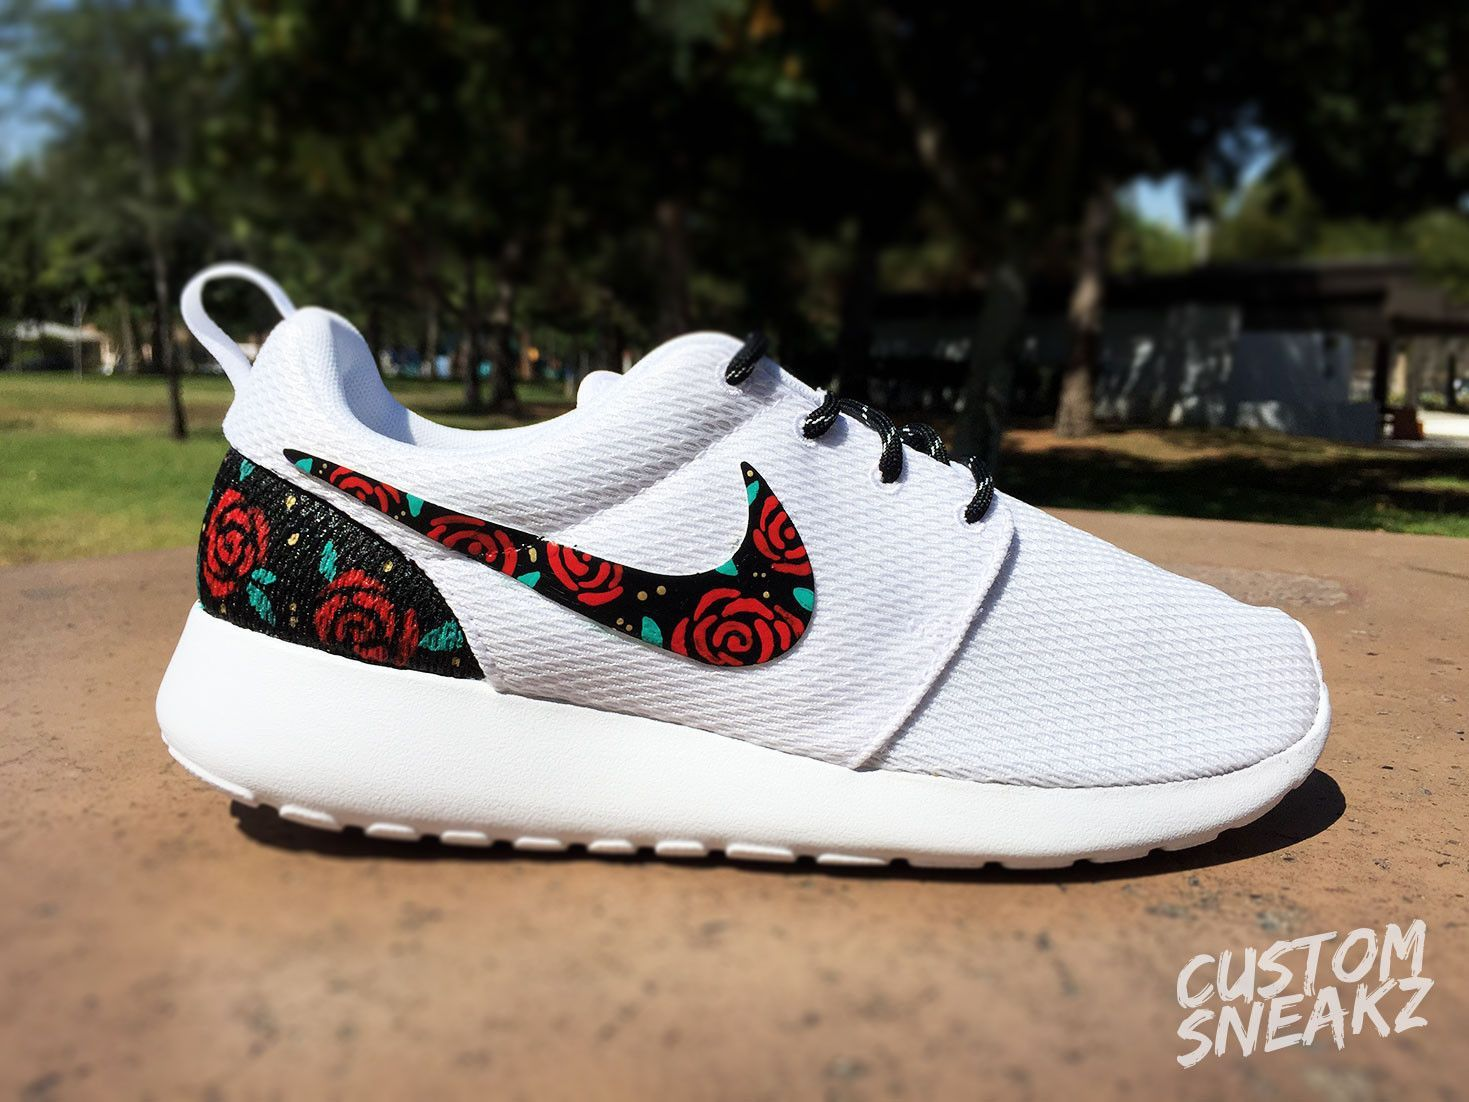 factory price 0bff0 b151f Womens Custom Nike Roshe Run sneakers, Rose Gold design, Red Roses with  teal leaves and gold speckles, Custom roshe run roses